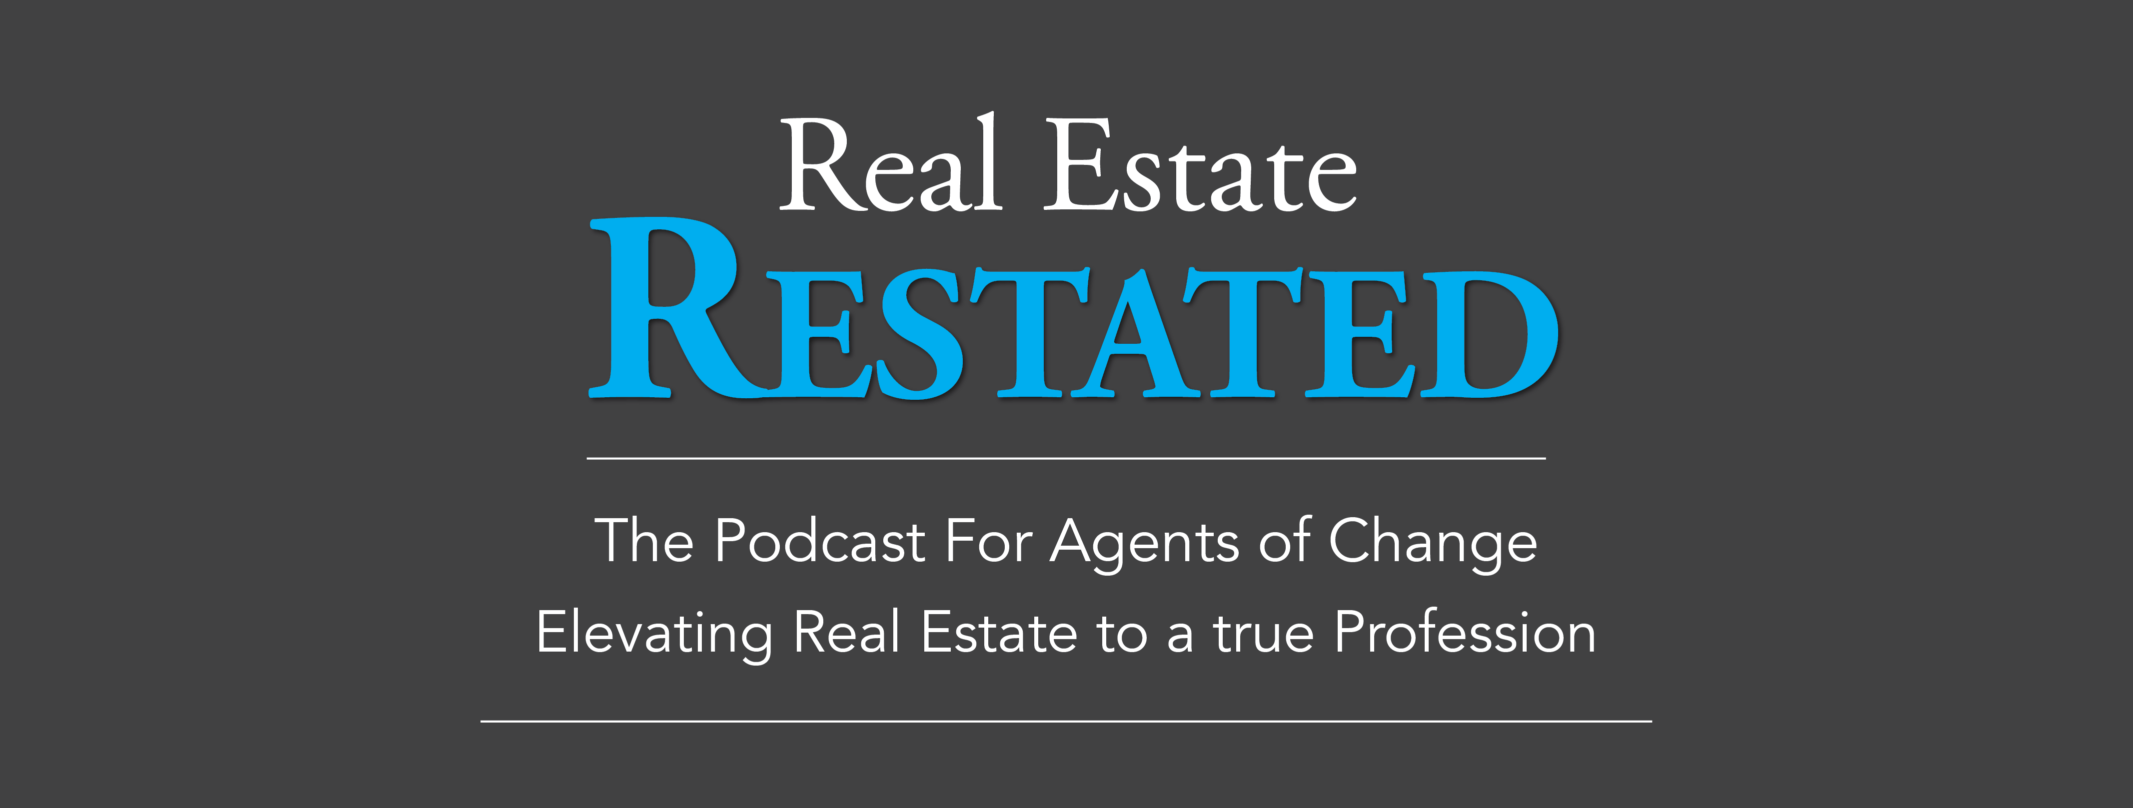 Real Estate RESTATED